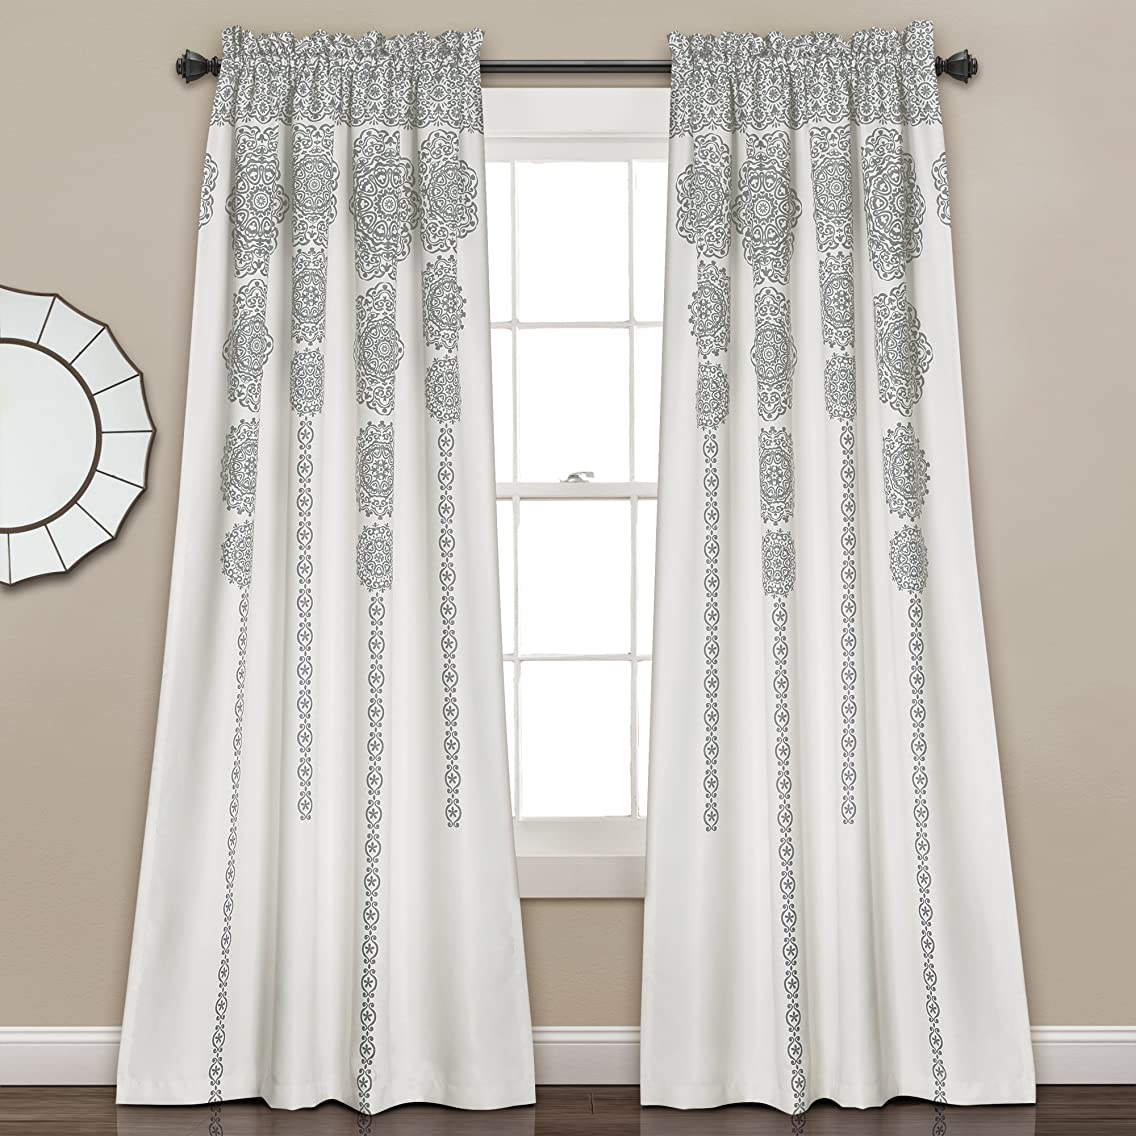 Lush Decor Stripe Medallion Room Darkening Window Curtain Panel Pair Set, 84